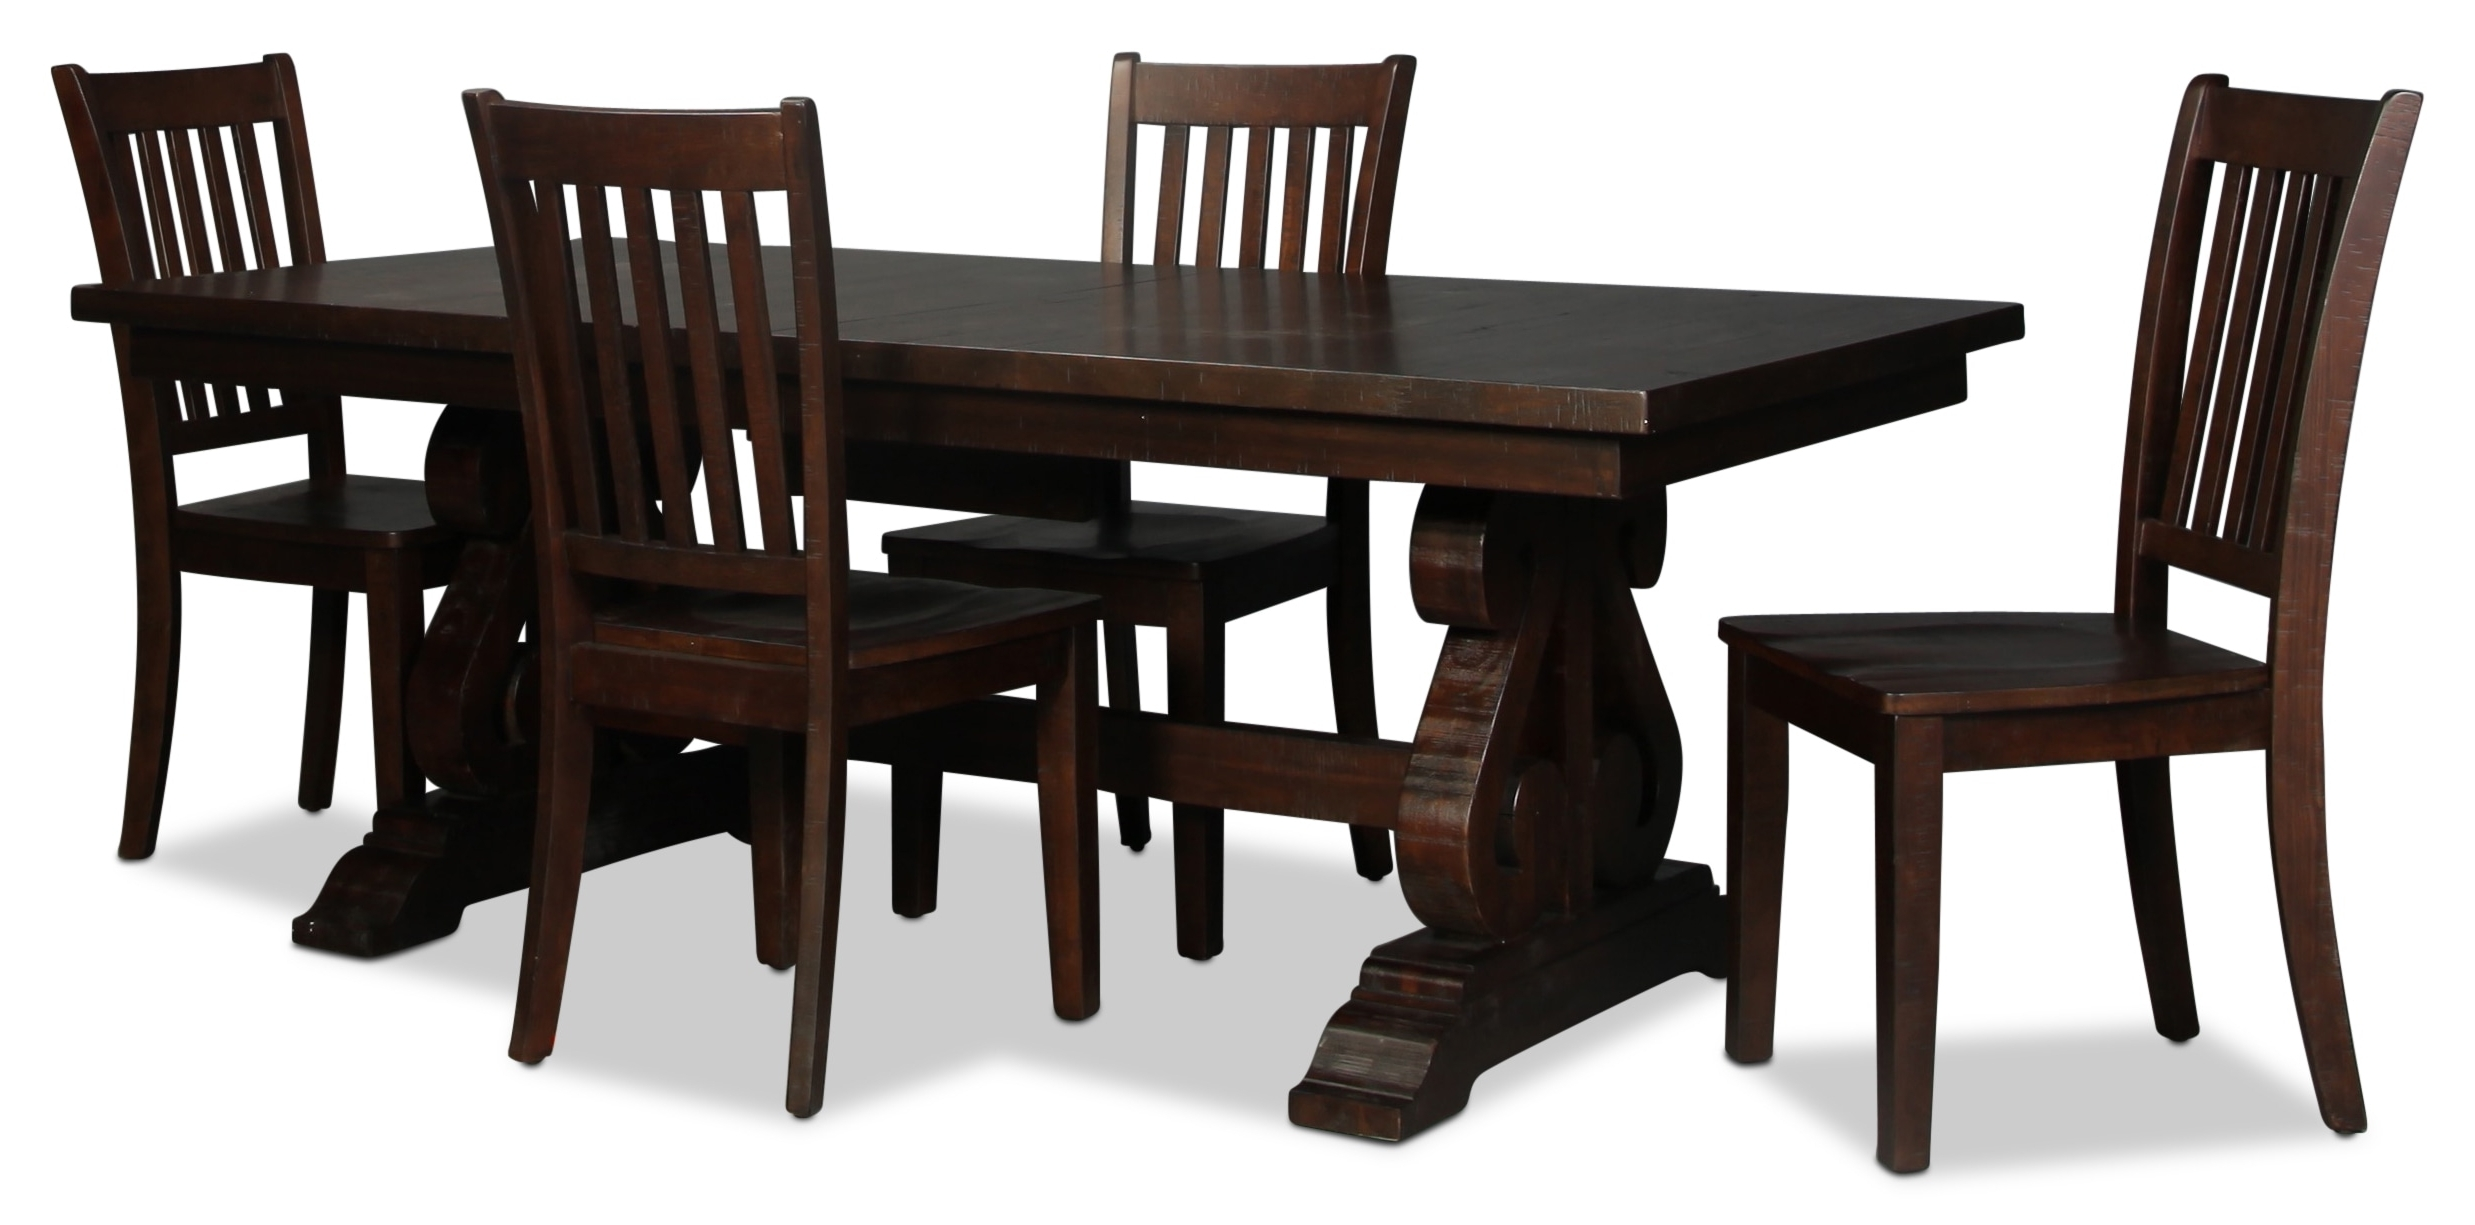 2018 Hudson Dining Tables And Chairs Pertaining To Hudson Table And 4 Side Chairs – Walnut (View 4 of 25)